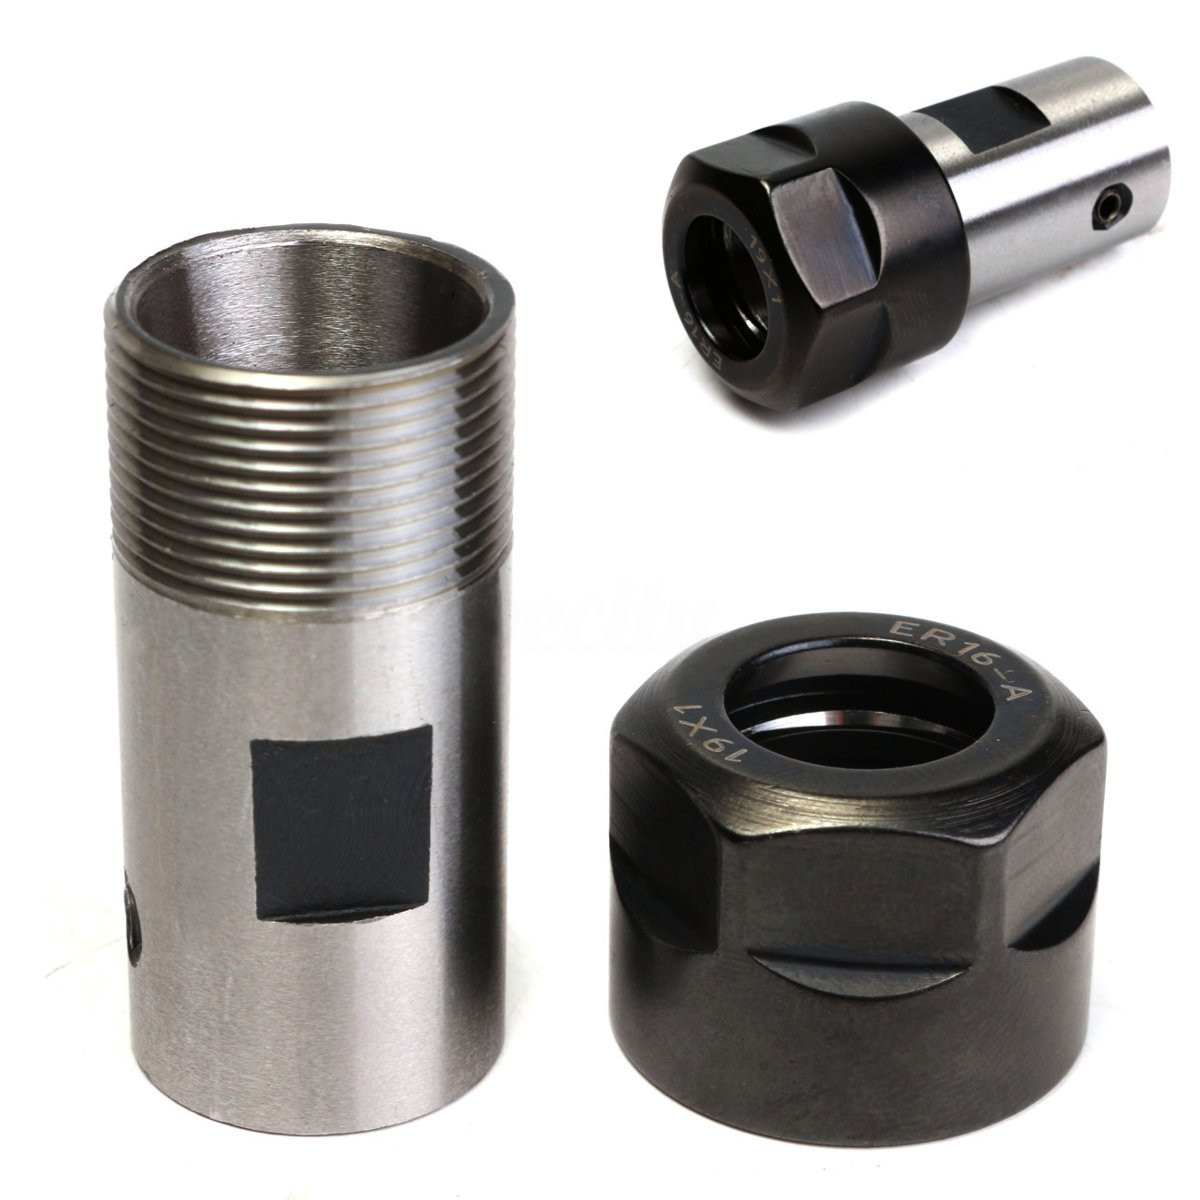 ER16 Collet Chuck Motor Shaft Inner 8mm Spindle Extension Rod for CNC Milling ALI88 er20 collet motor shaft chuck er er11 er16 er25 er32 spindle extension rod tool holder cnc milling drill chuck b10 12 18 jt2 6